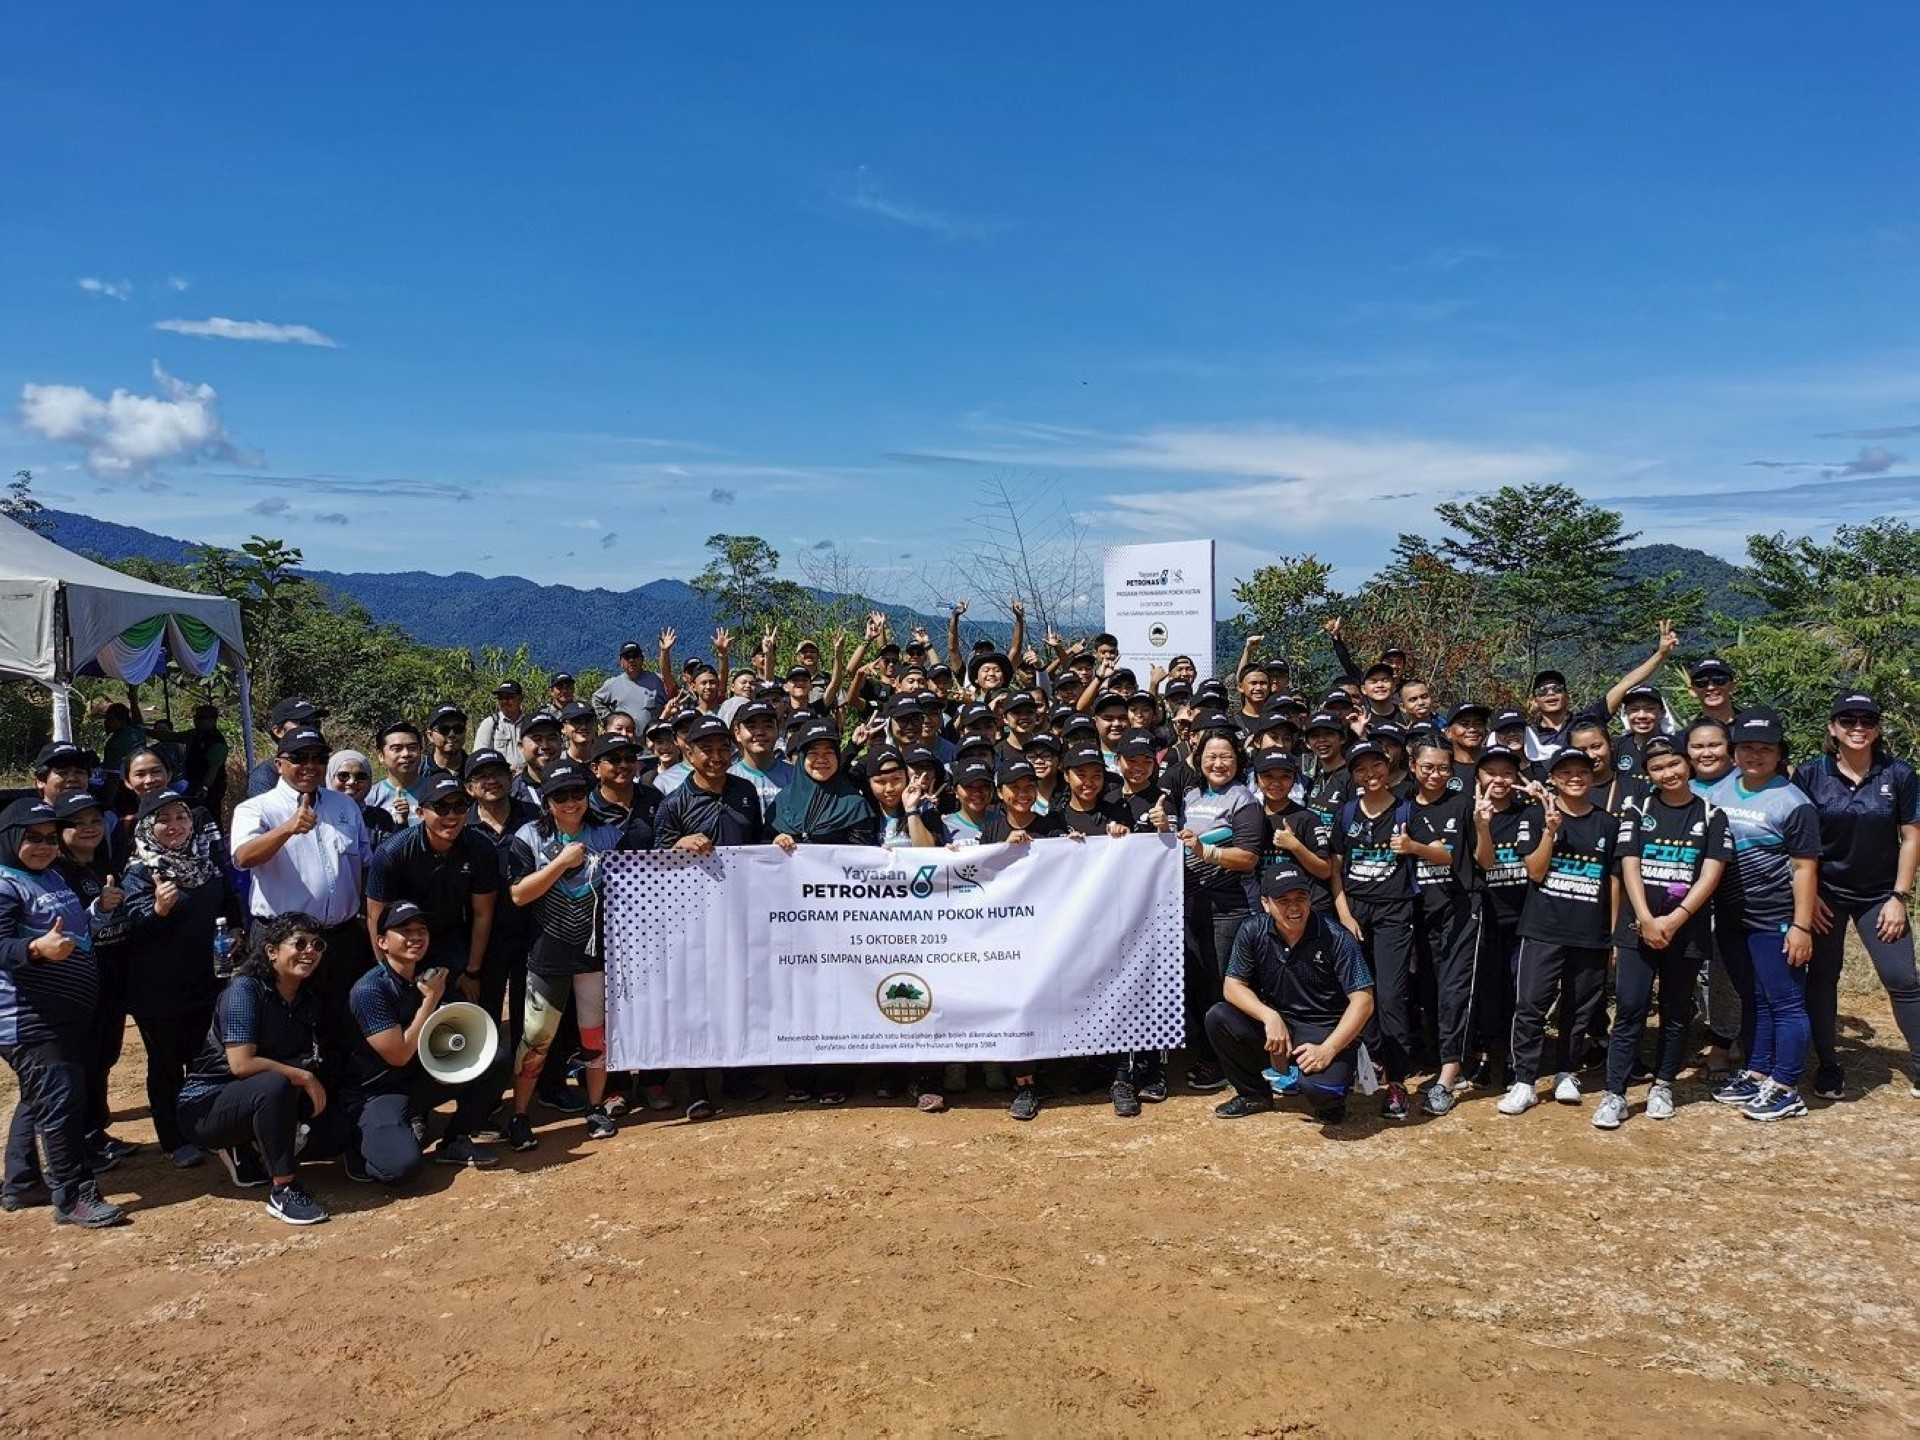 A group photo of some of the 150 volunteers, including students from St Michael's Secondary School, who were involved in the Sentuhan Alam programme.